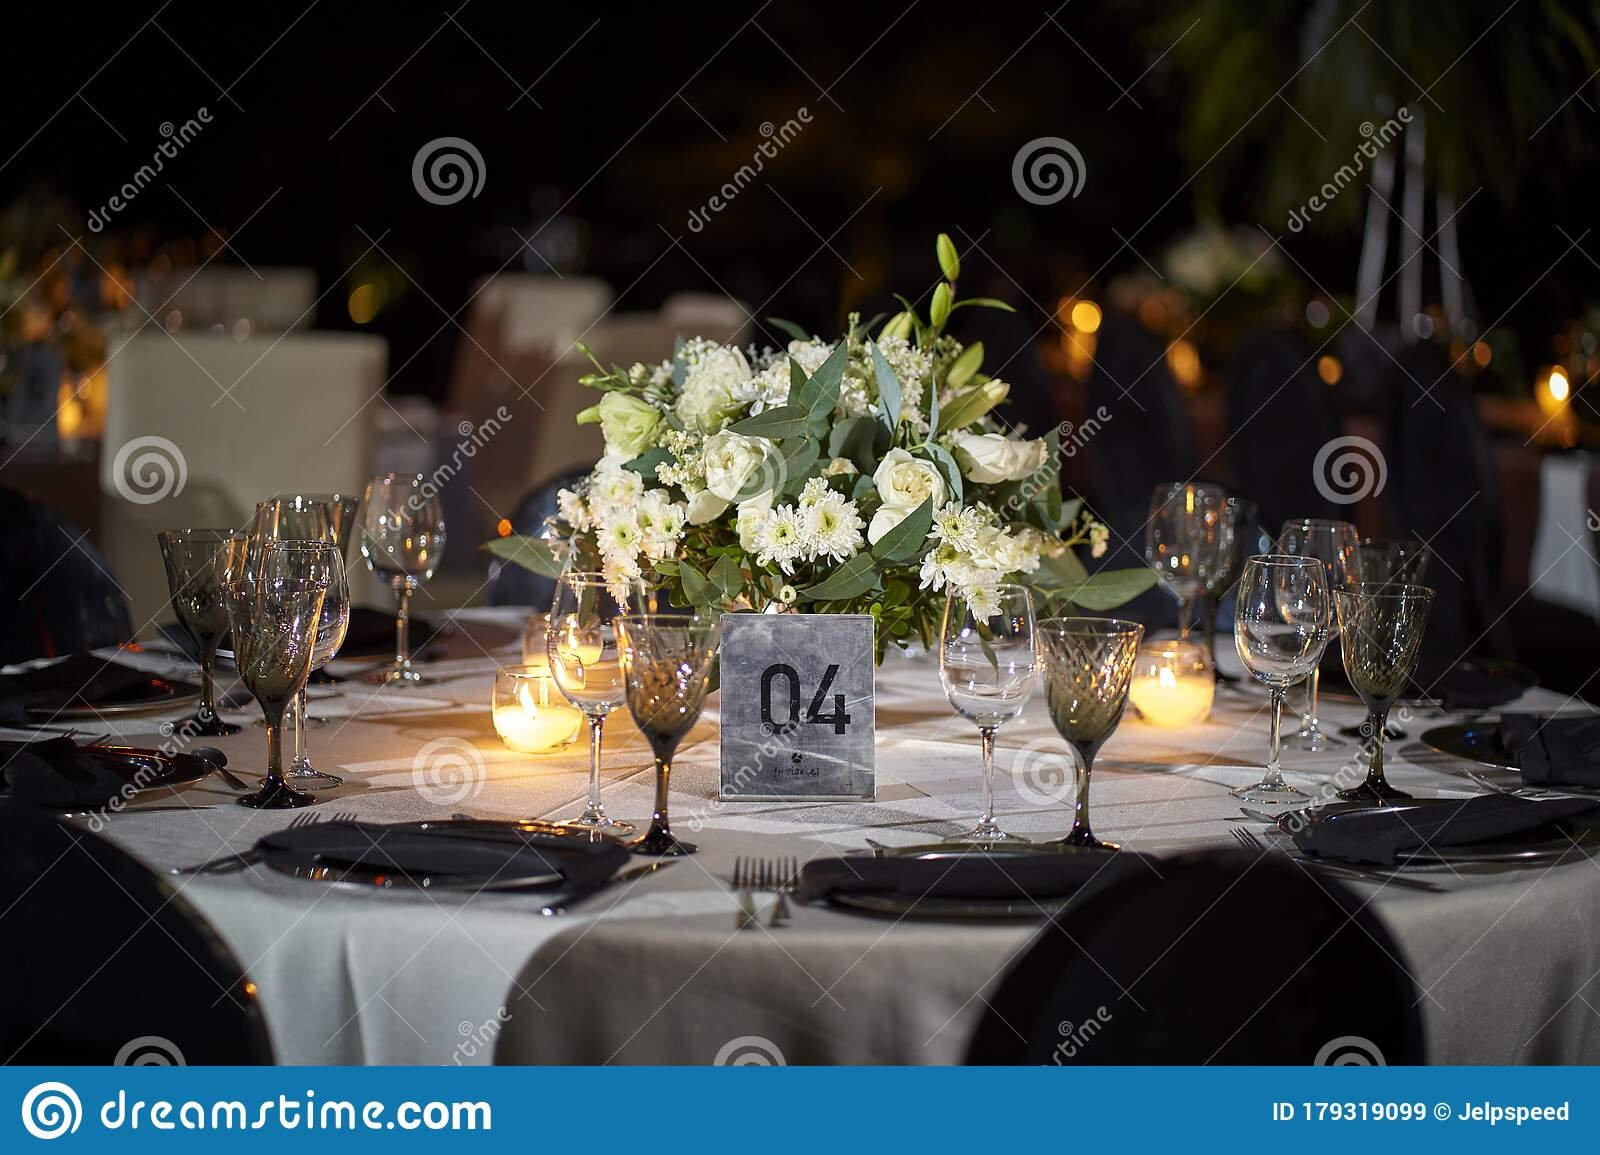 Wedding Decoration On Table Floral Arrangements And Decoration Arrangement Of White Flowers In Restaurant For Event Stock Image Image Of Light Bouquet 179319099